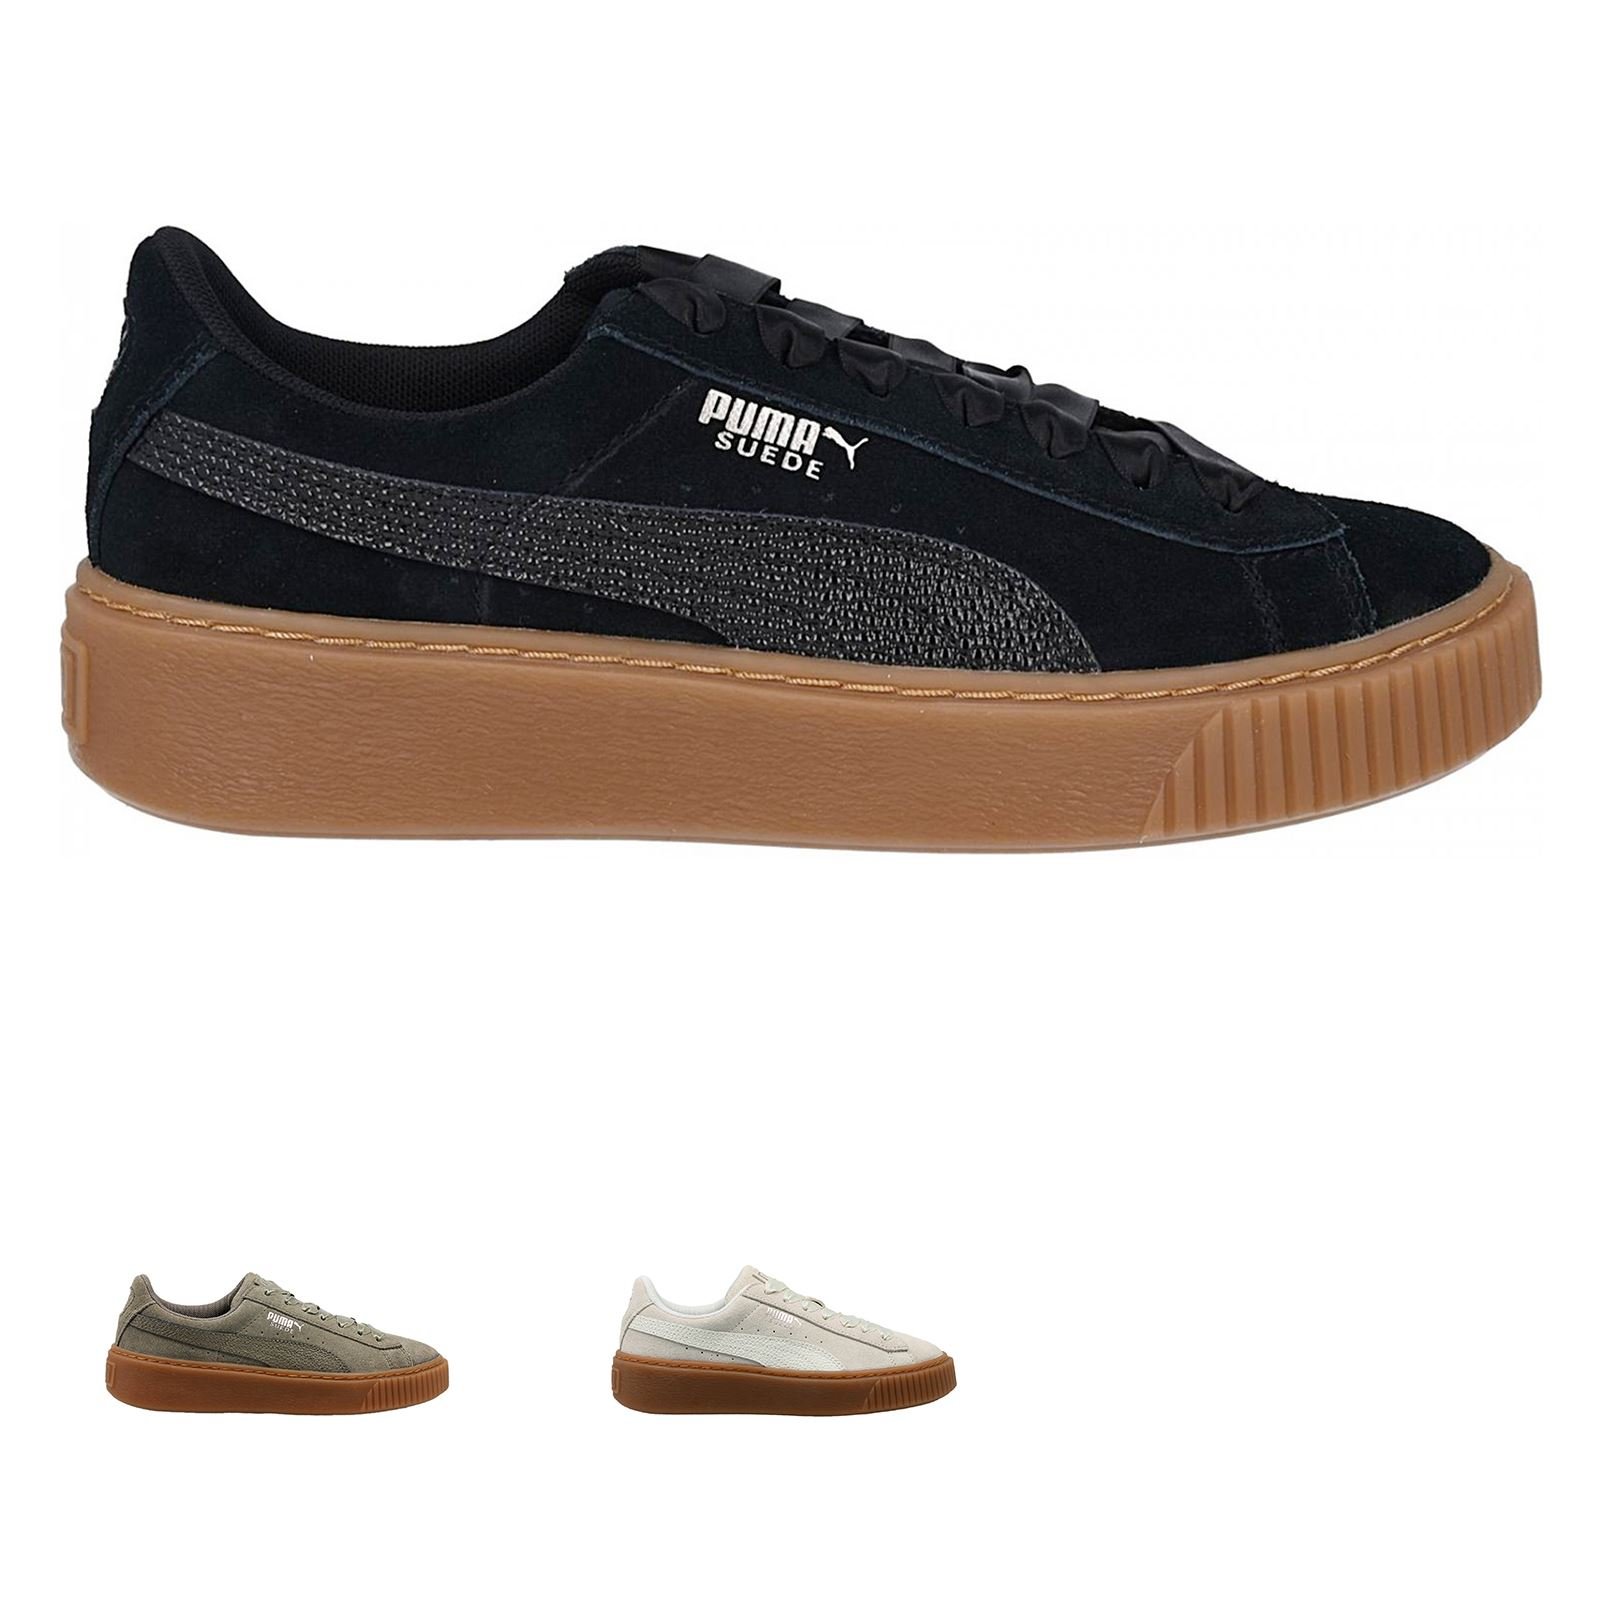 d6fe1c9bb281 Puma Suede Platform Bubbles Wns Suede Low-top Lace-up Sneakers ...